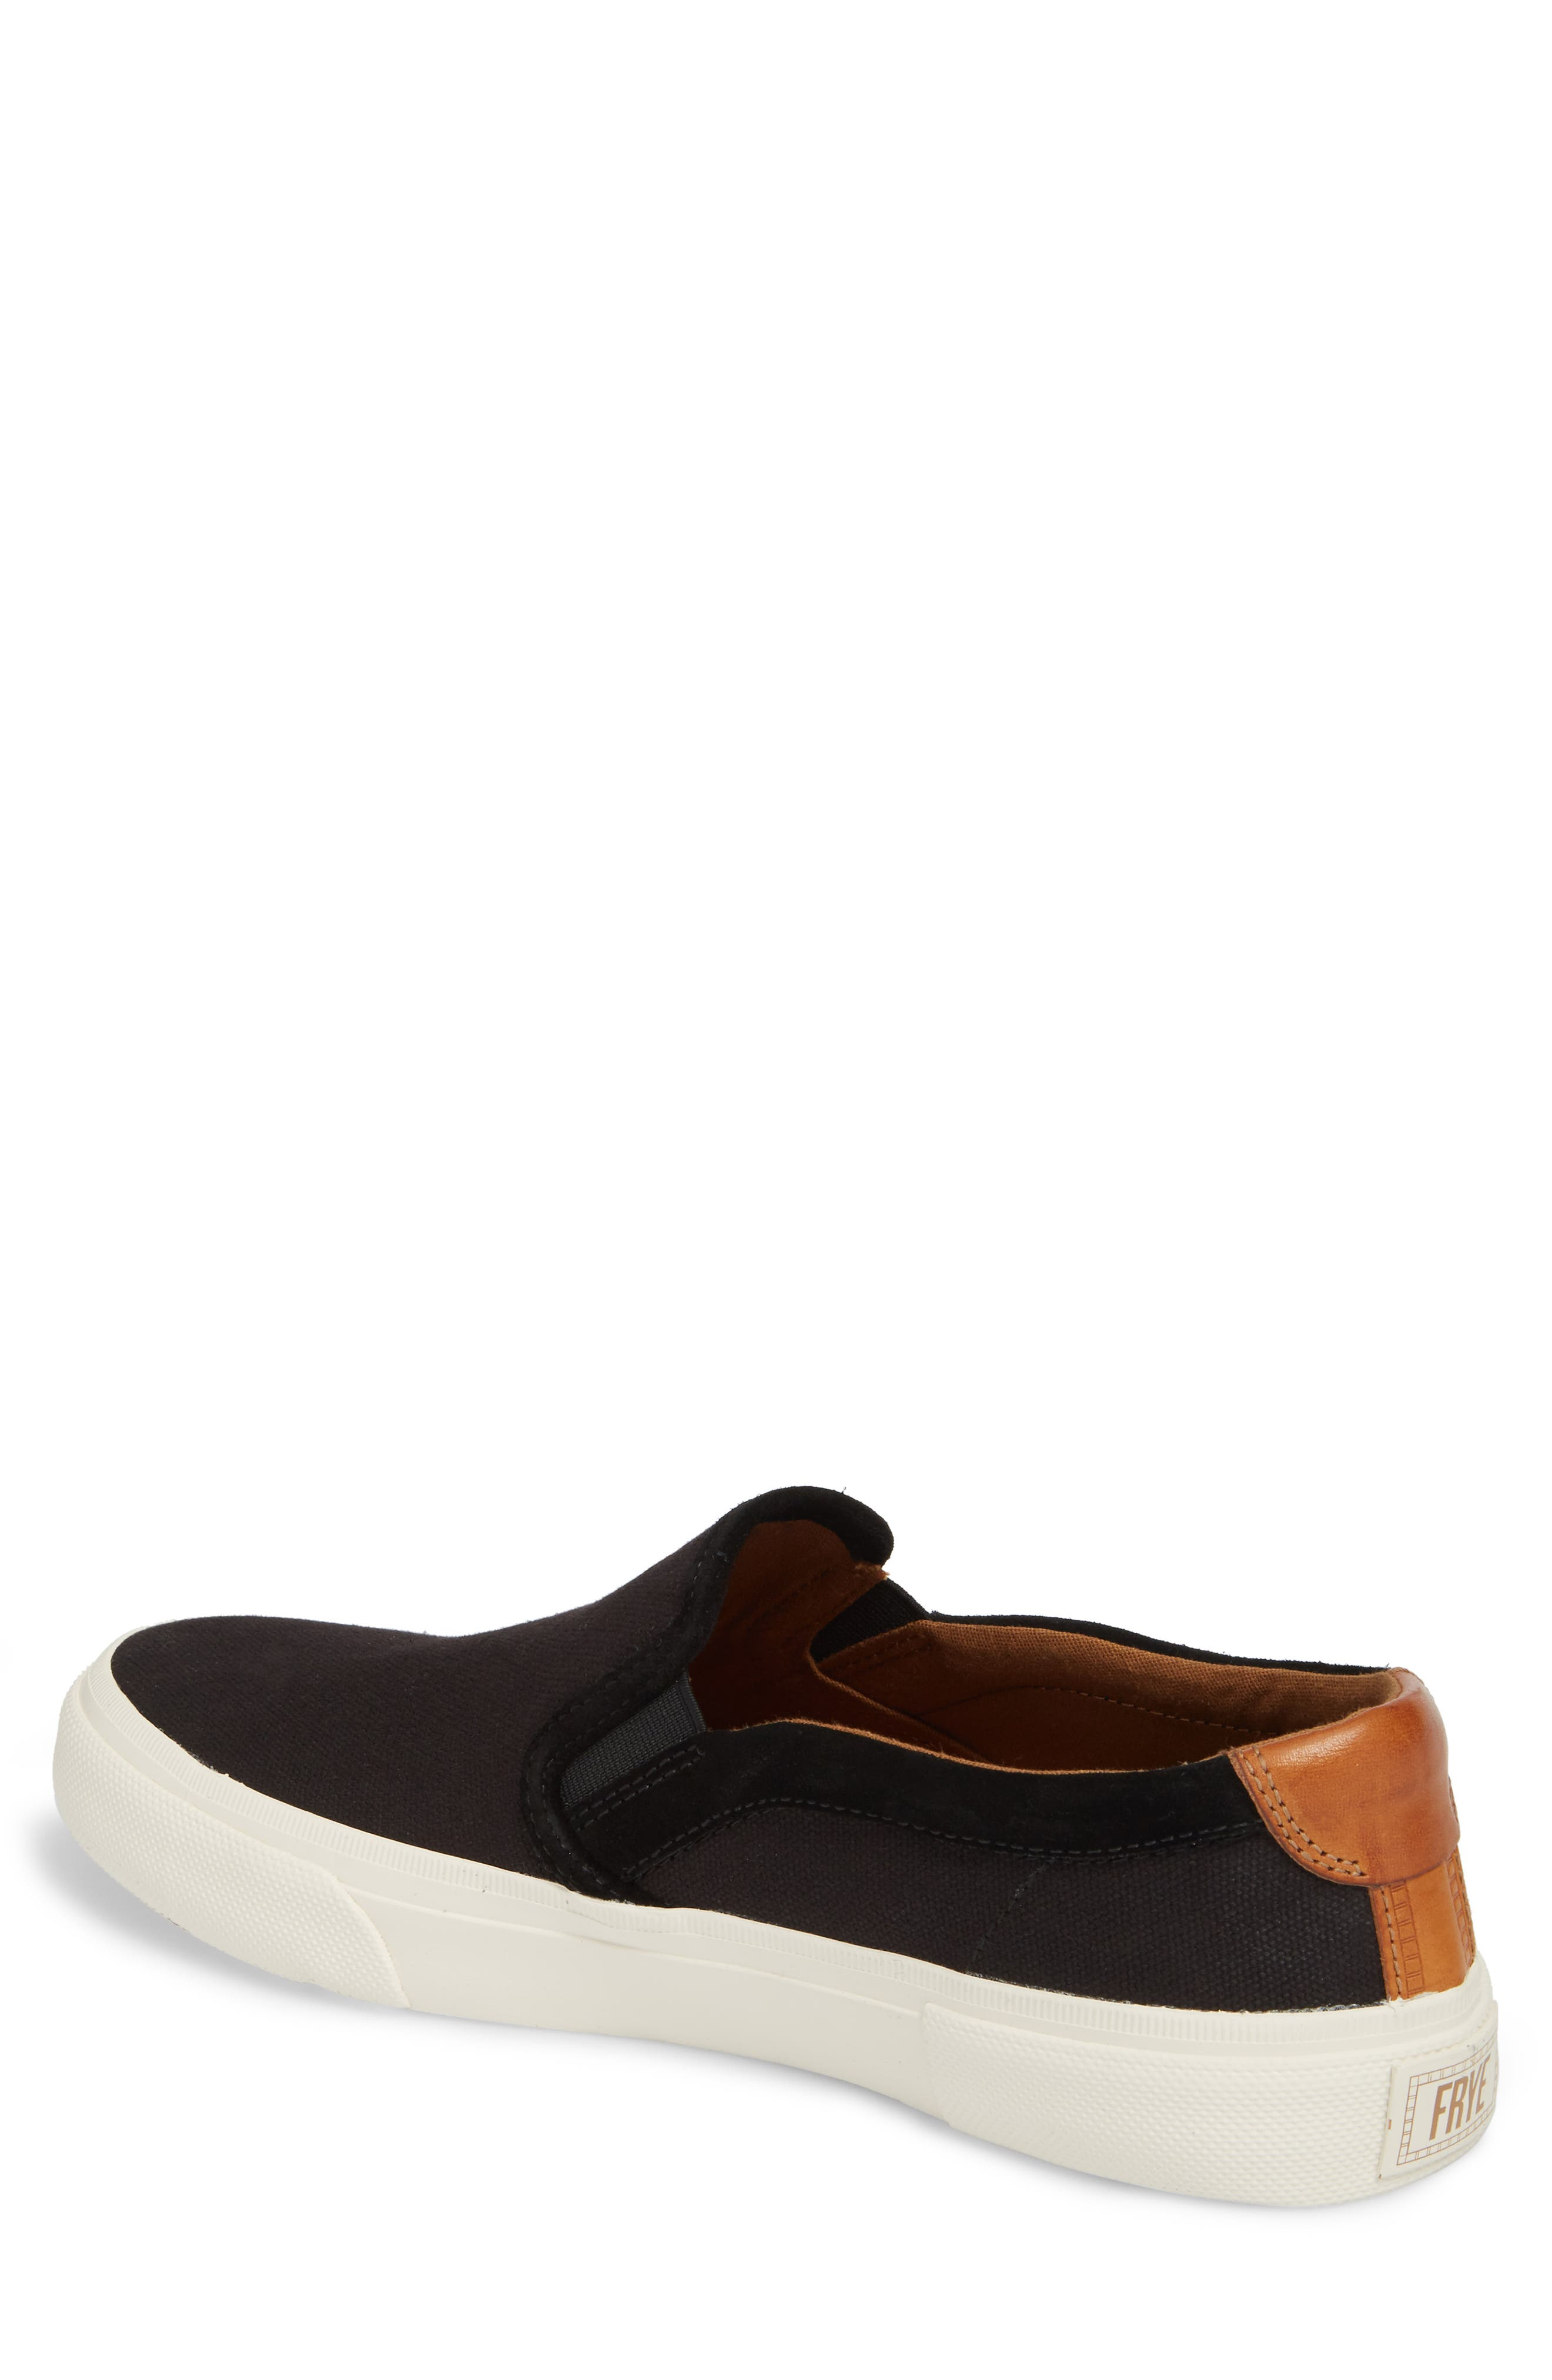 Ludlow Slip-On,                             Alternate thumbnail 2, color,                             001